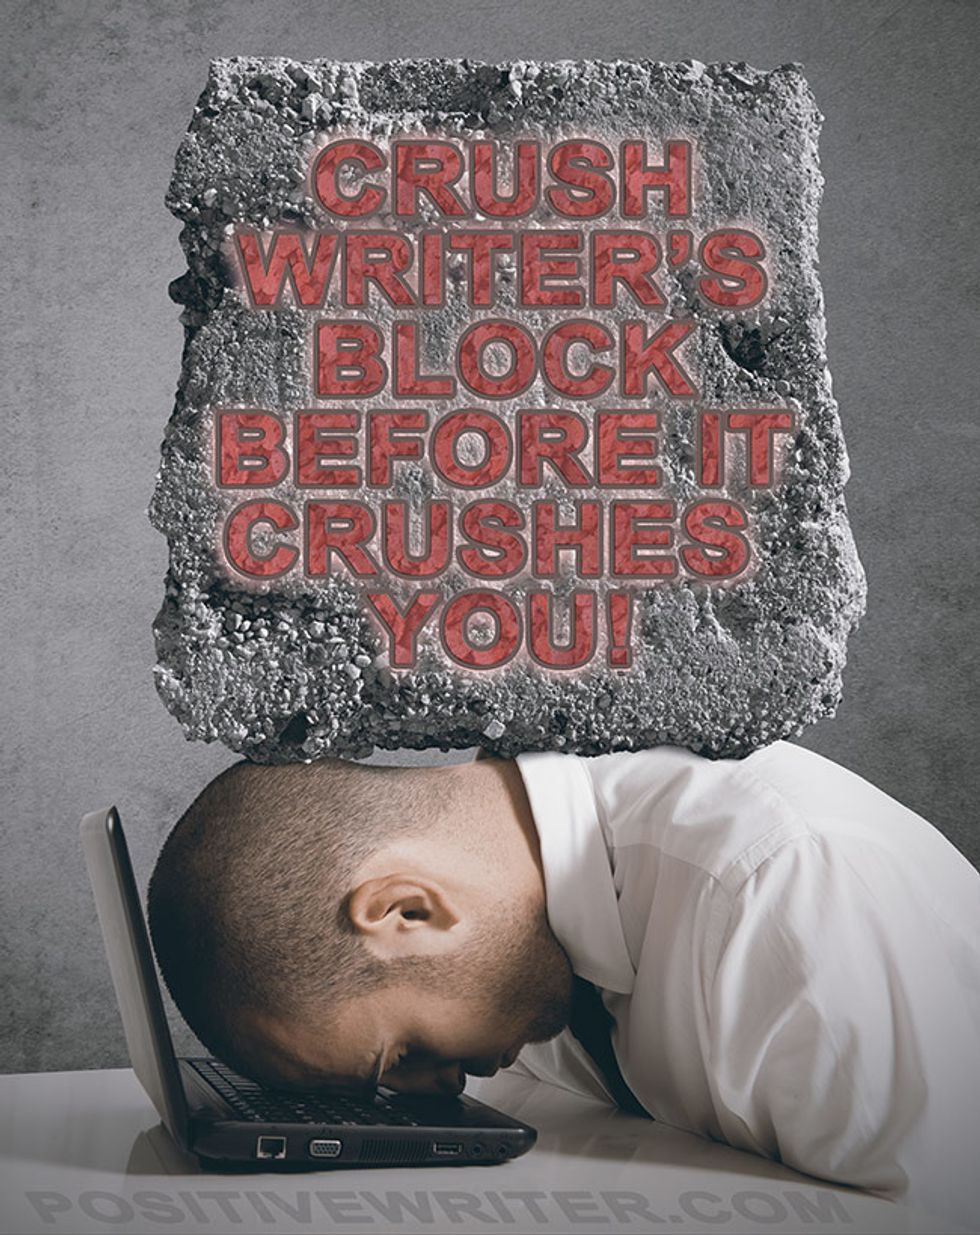 How to Effectively Beat Writer's Block